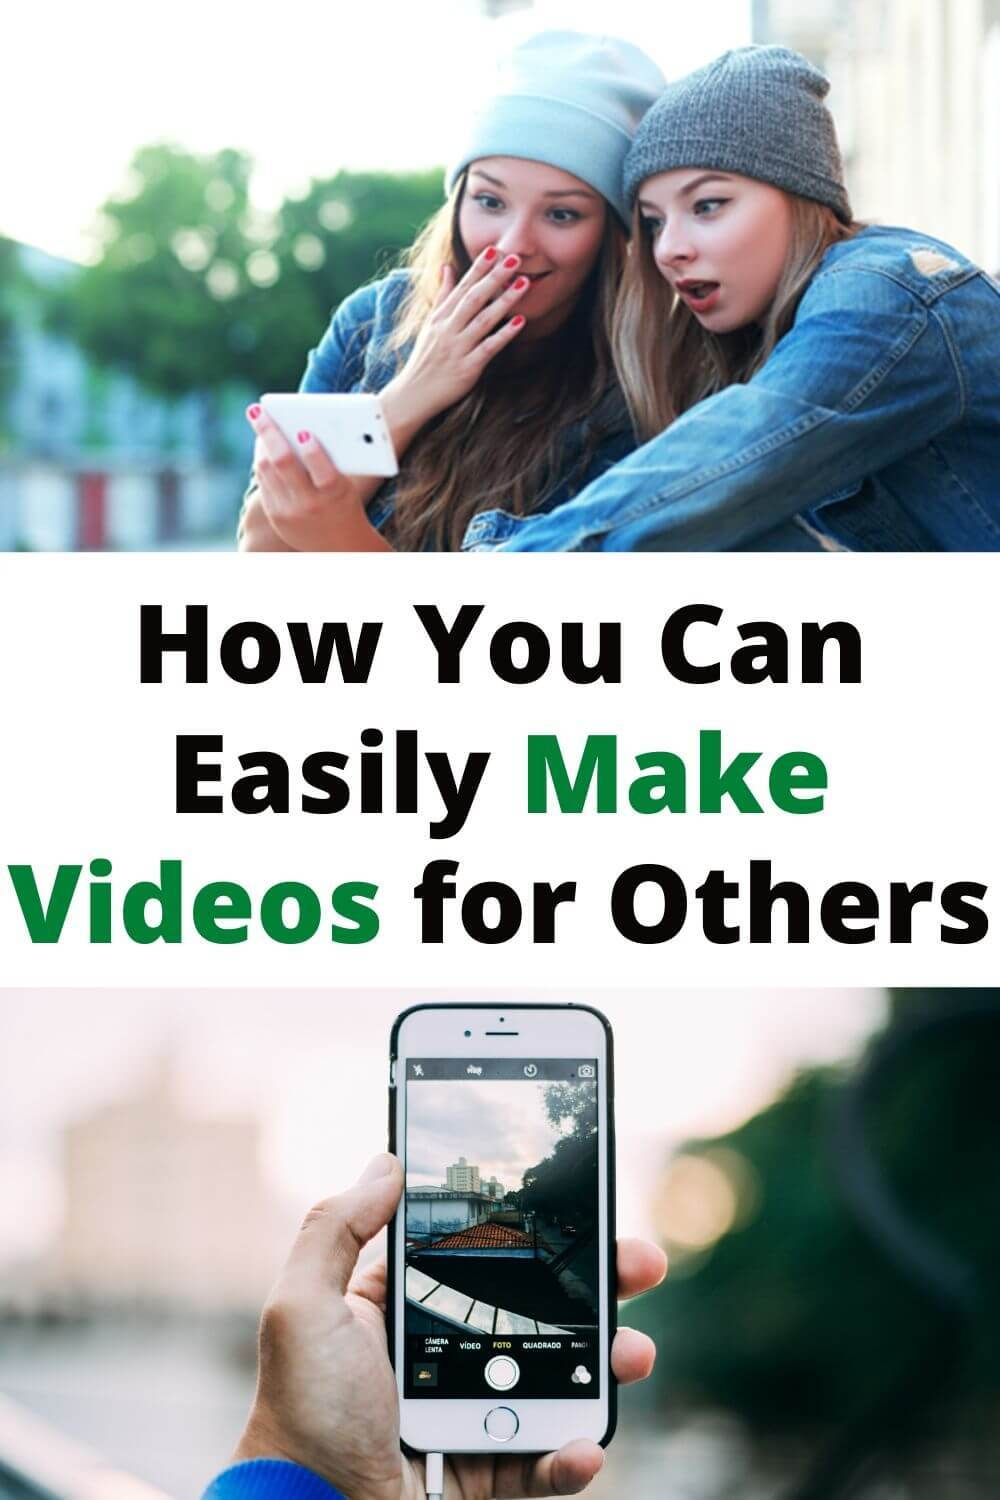 how you can easily make videos for others